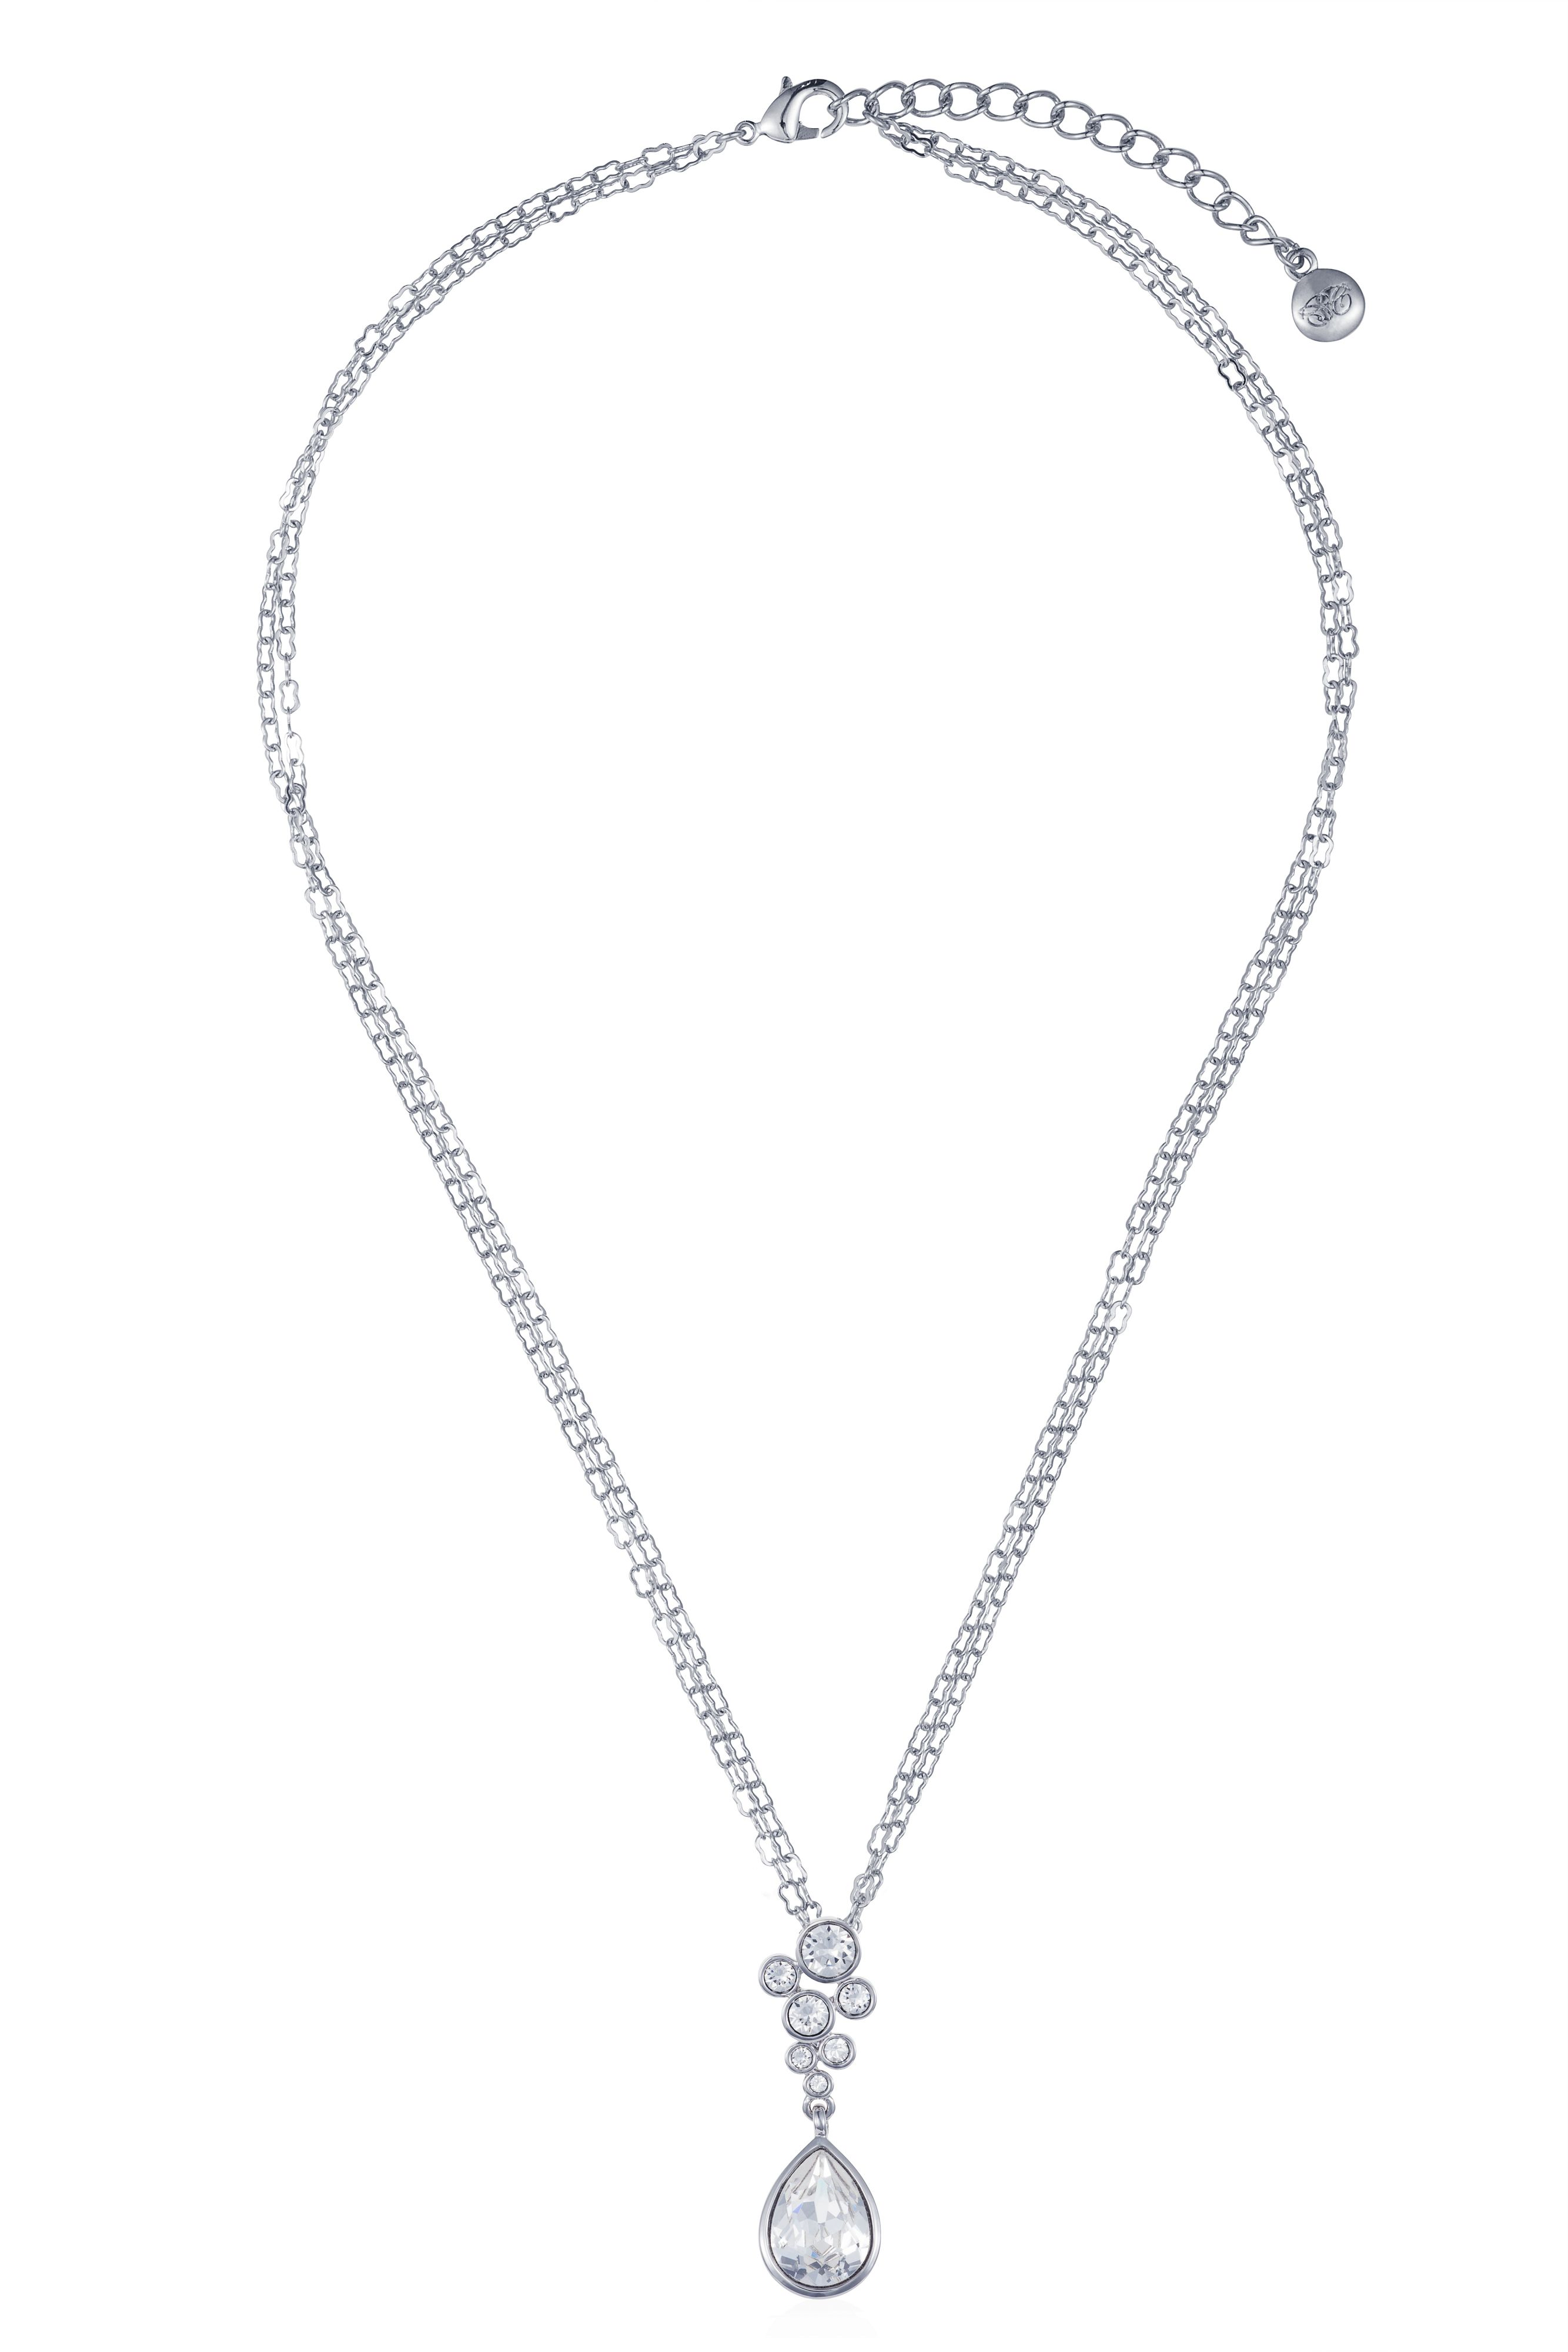 Rhodium plated titania multibubble pendant